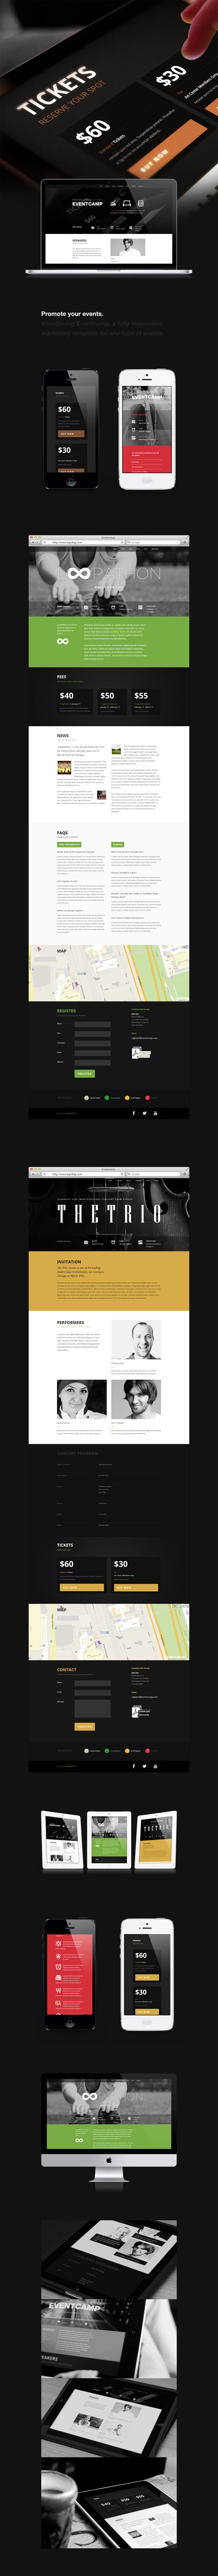 """Eventcamp by Ye Joo Park, via Behance *** """"Eventcamp"""" is a one-page marketing HTML template that helps markets to promote events."""